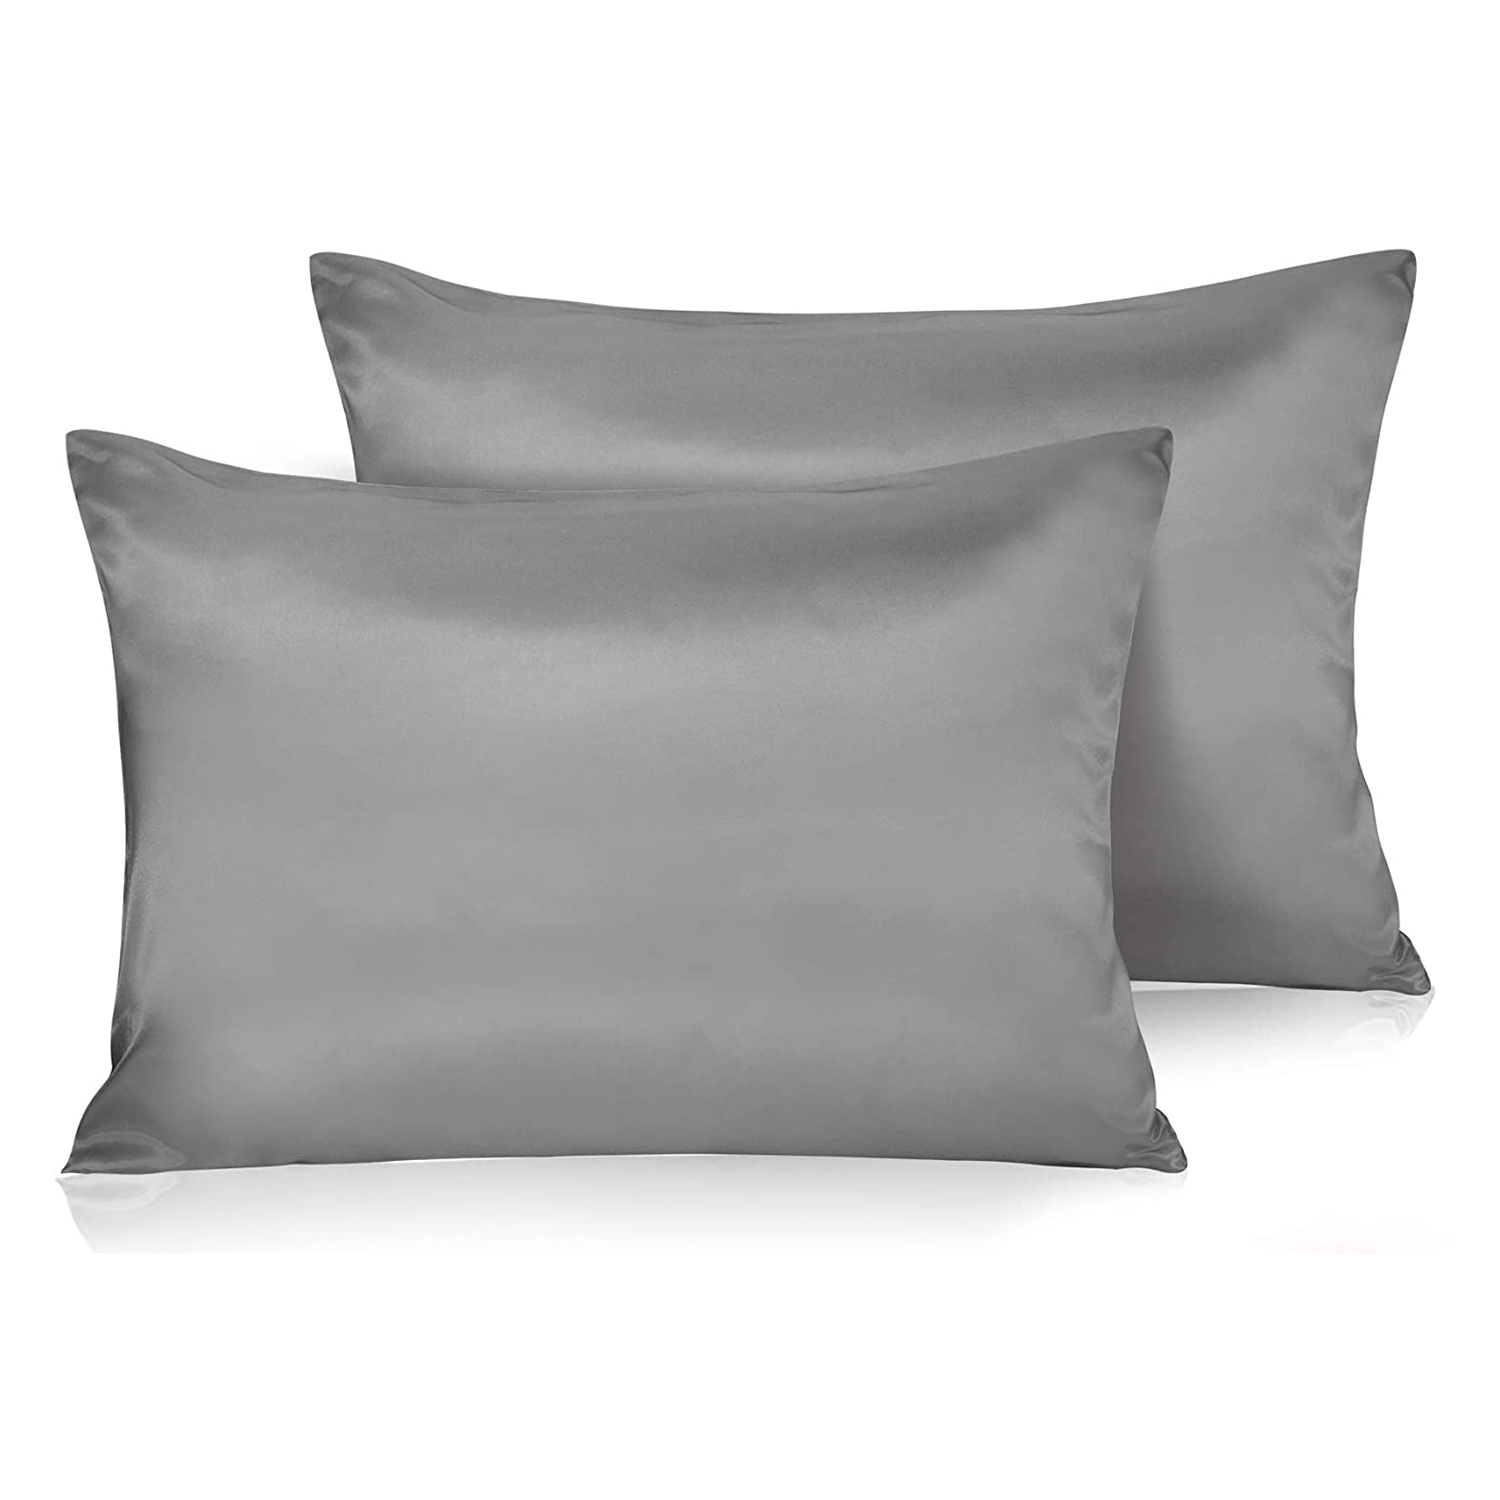 Set of 2 Pillow Cases Satin Lavendar Brand New in Package